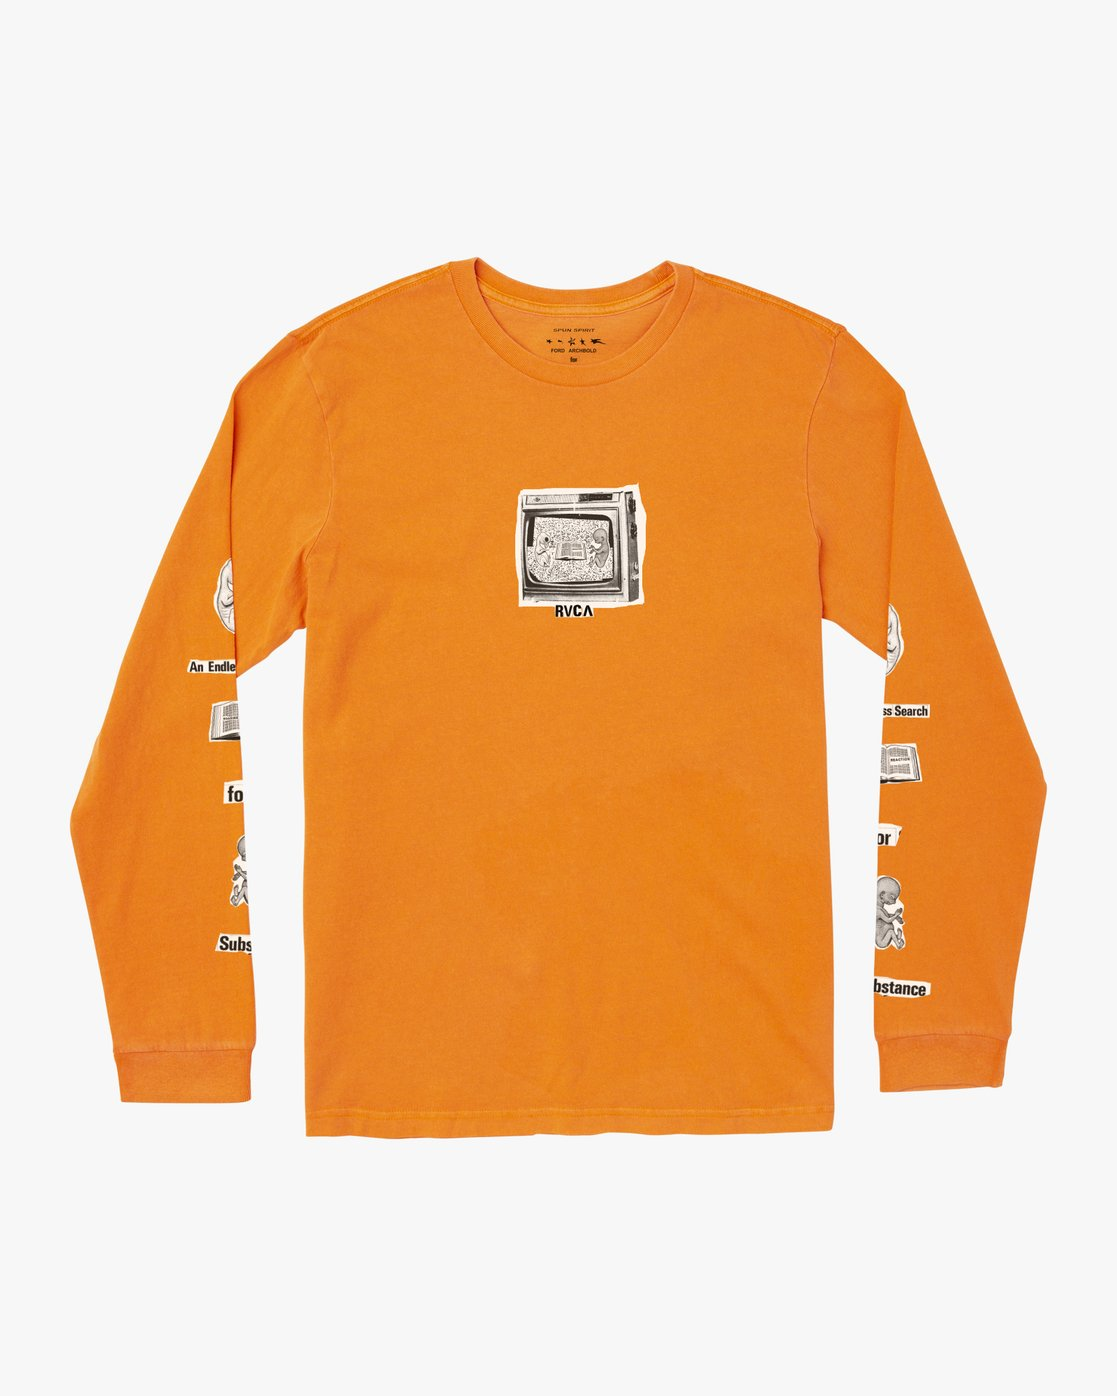 0 ENDLESS SEARCH LONG SLEEVE T-SHIRT Orange M4551RES RVCA